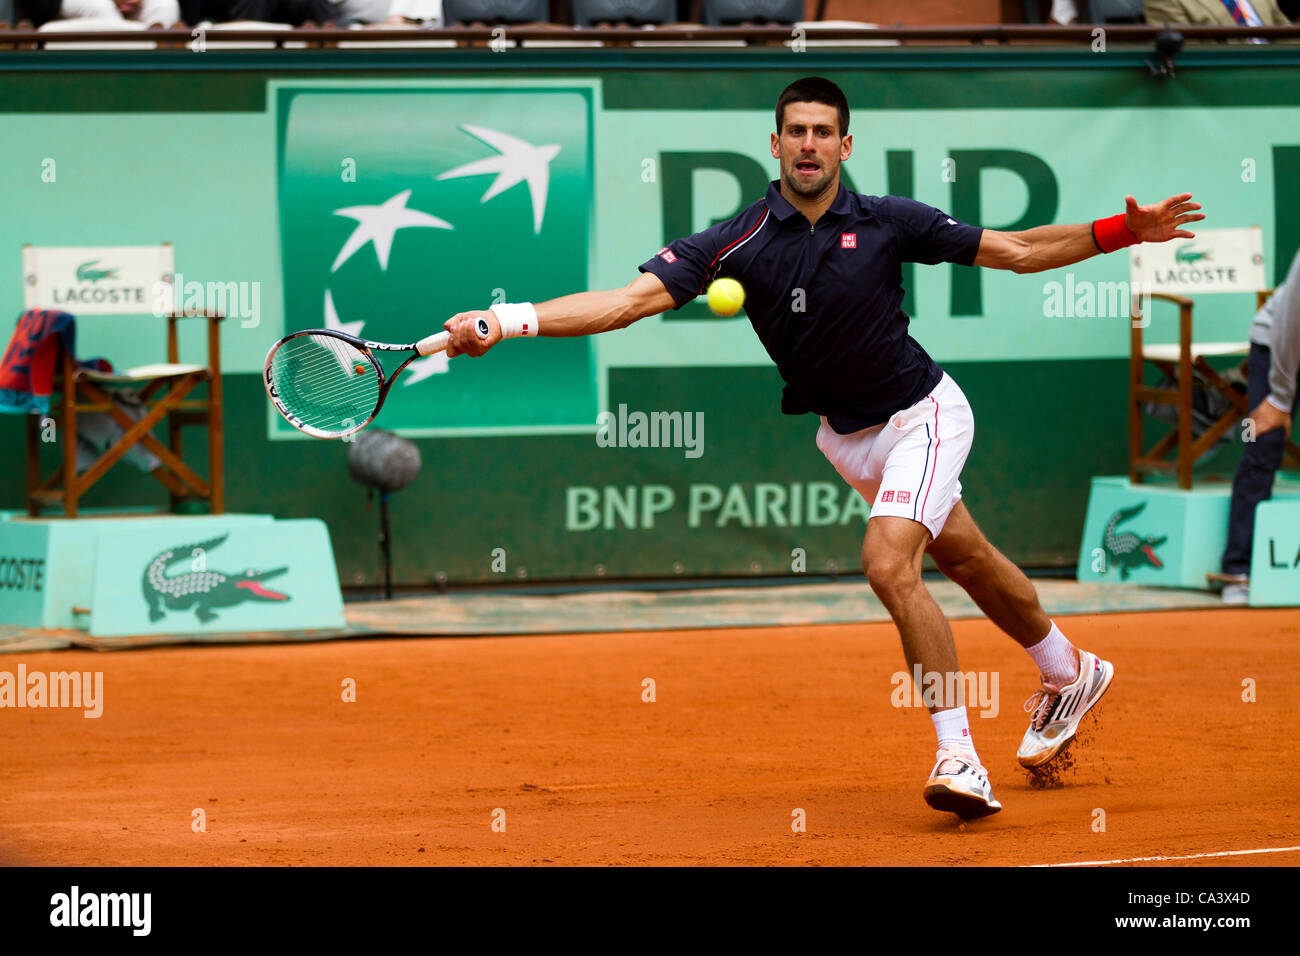 03.06.2012 Paris, France. Novak Djokovic in action against Andreas Seppi on day 8 of the French Open Tennis from - Stock Image